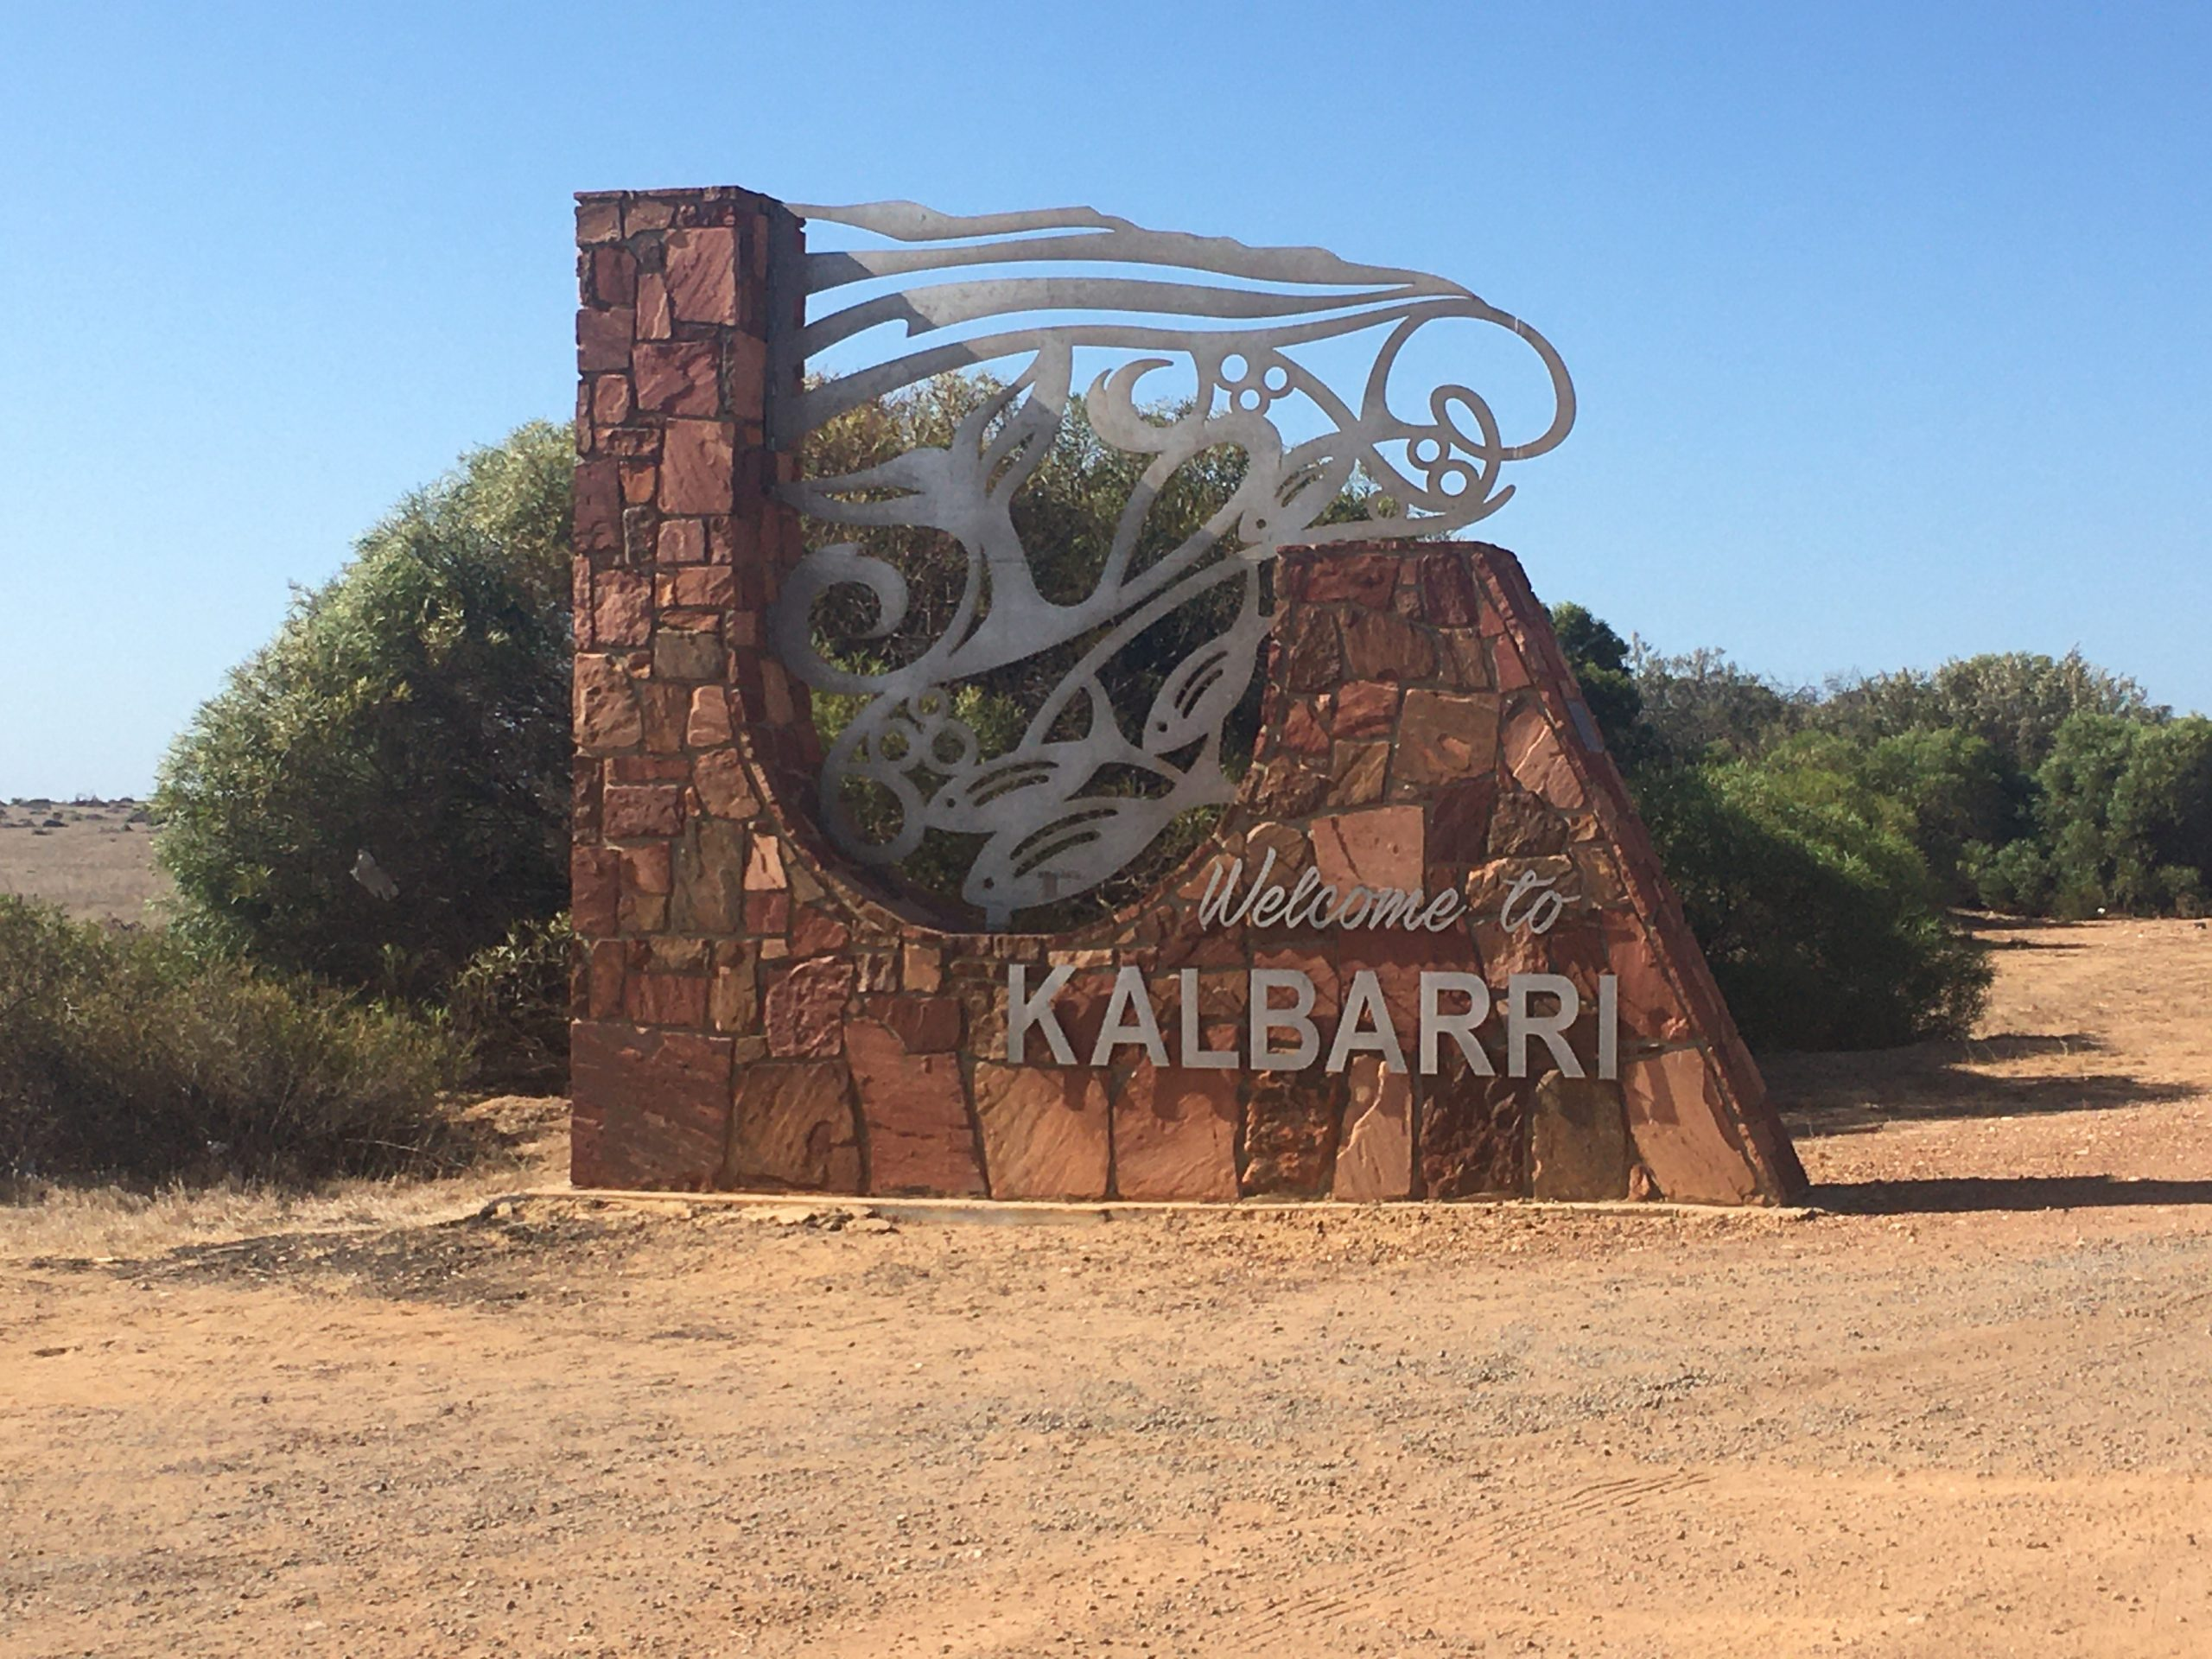 Welcome to Kalbarri